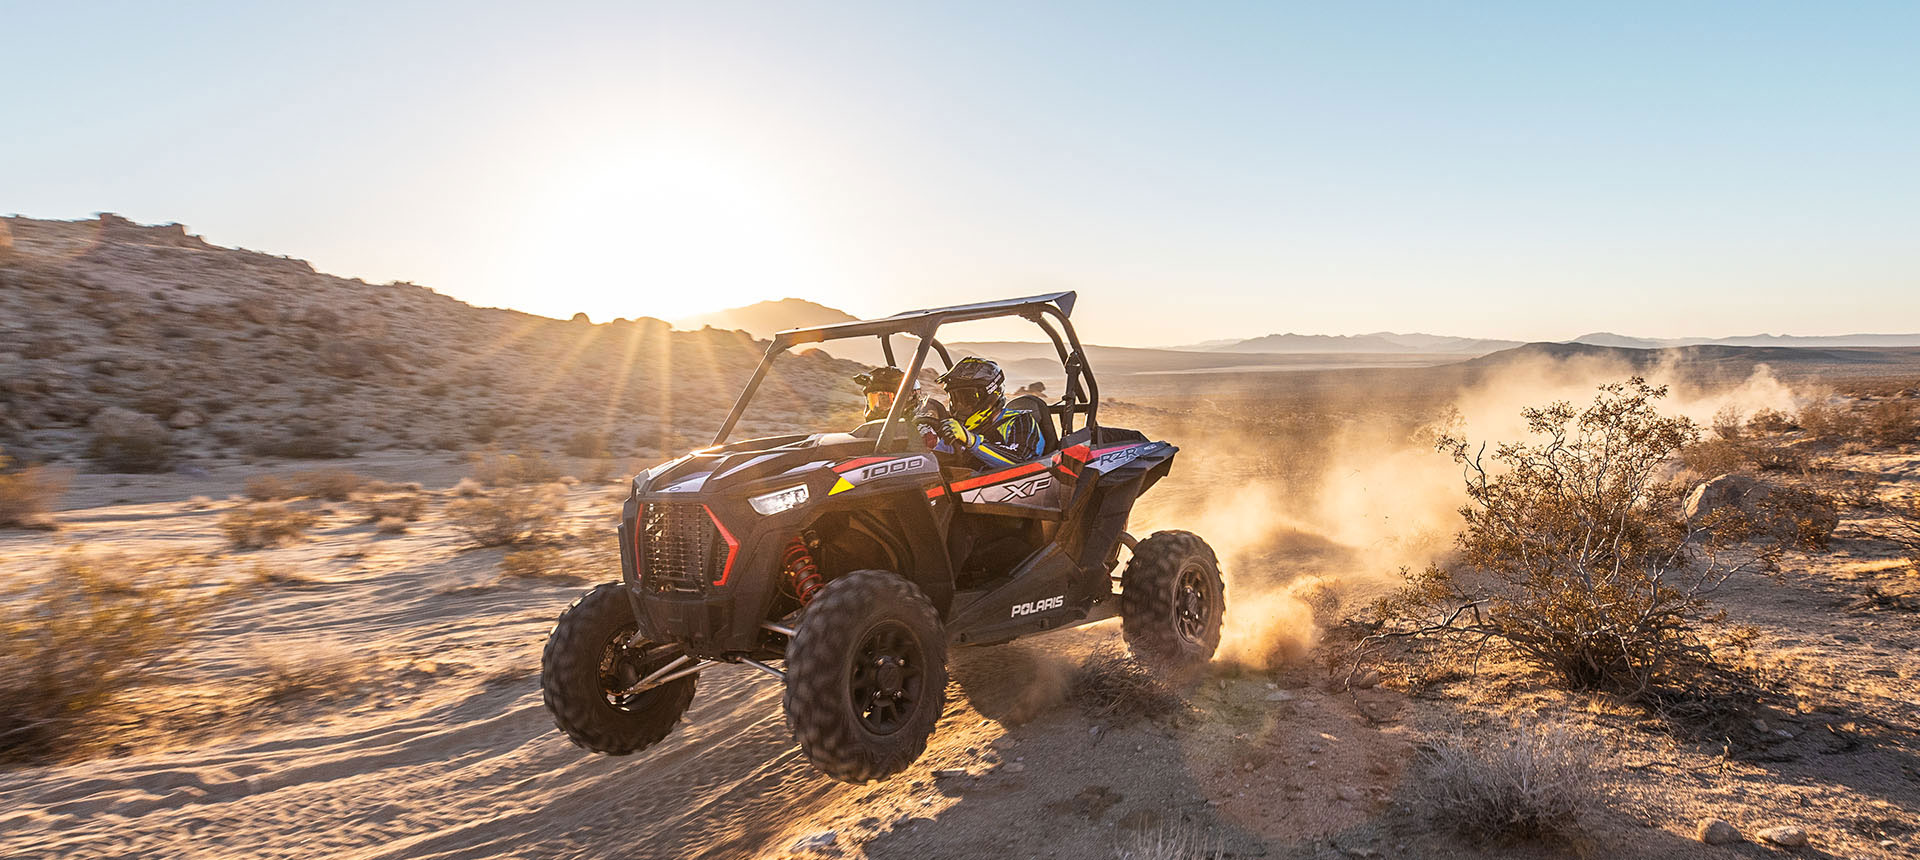 2019 Polaris RZR XP 1000 in Freeport, Florida - Photo 11